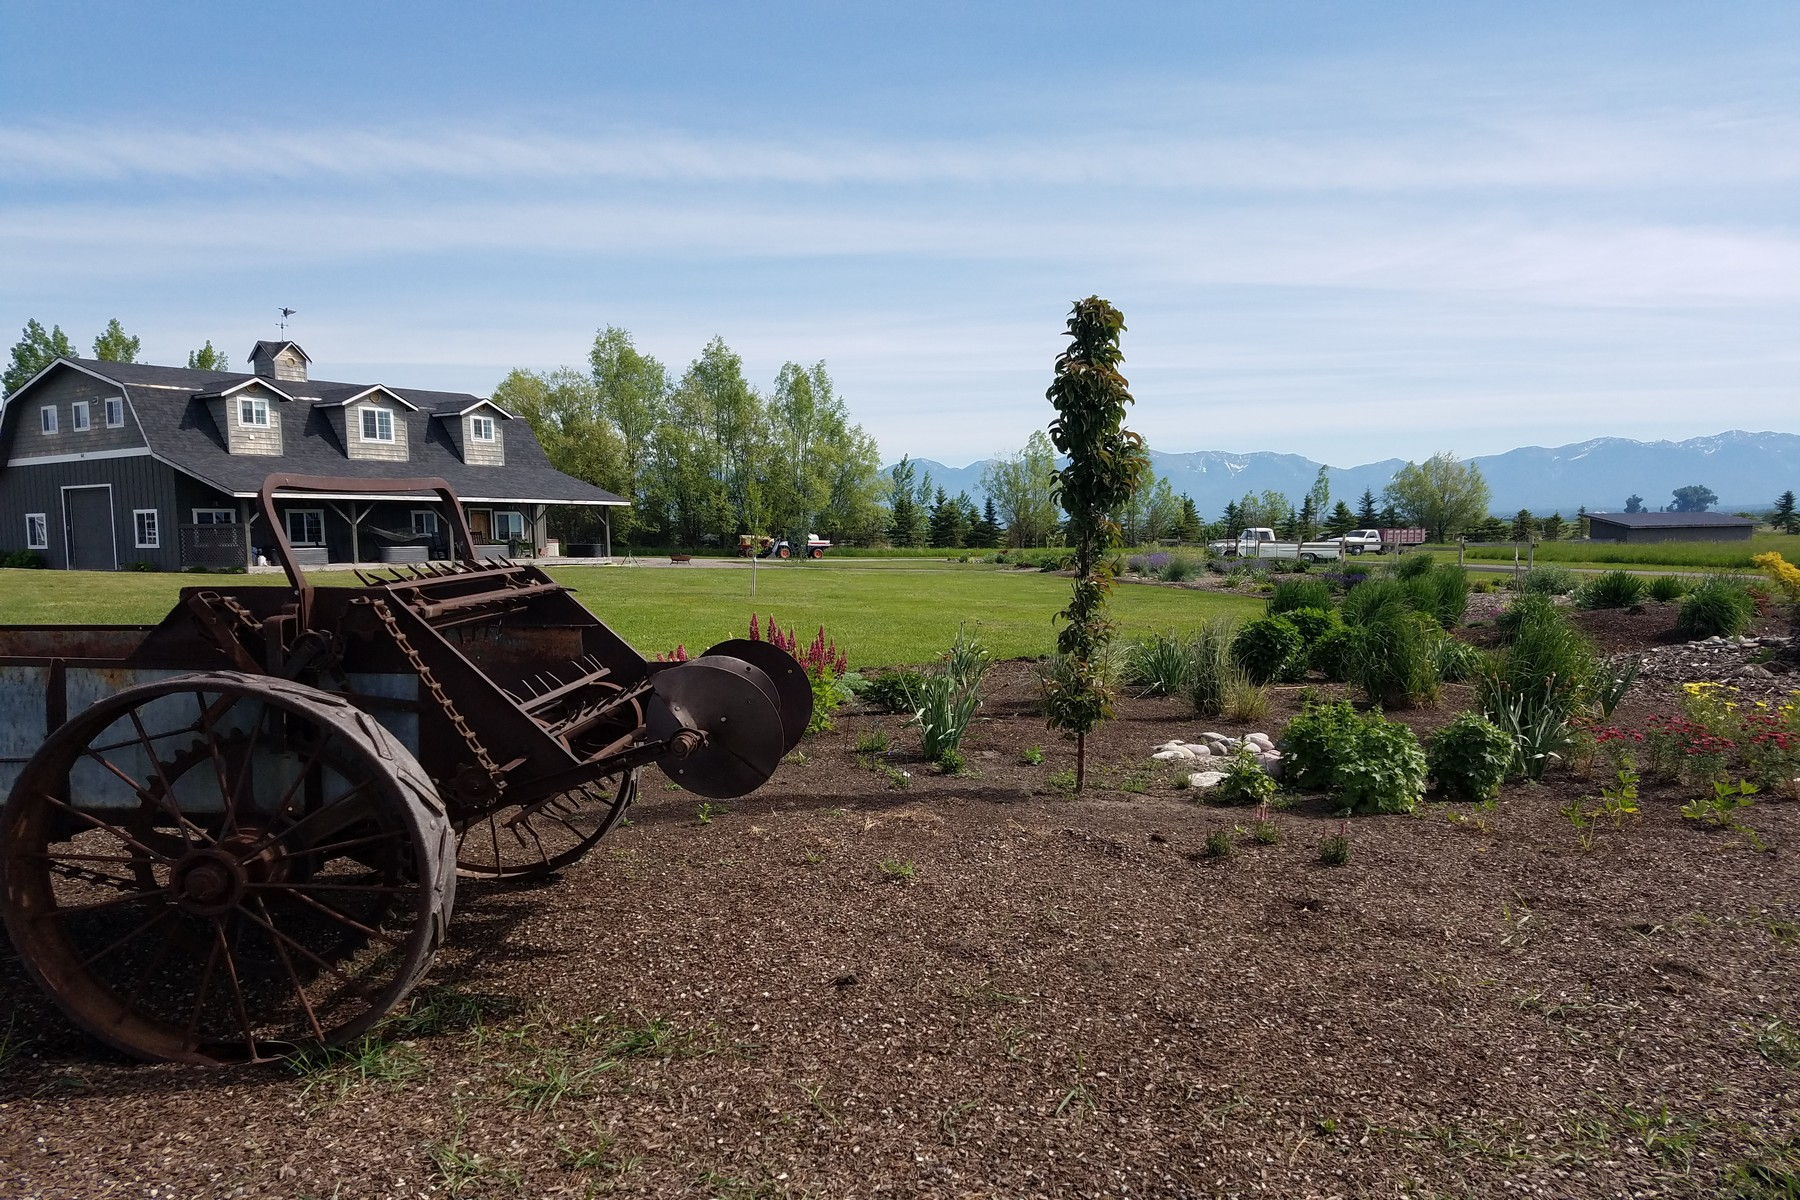 Single Family Home for Active at 611 Migration Rd Somers, Montana 59932 United States